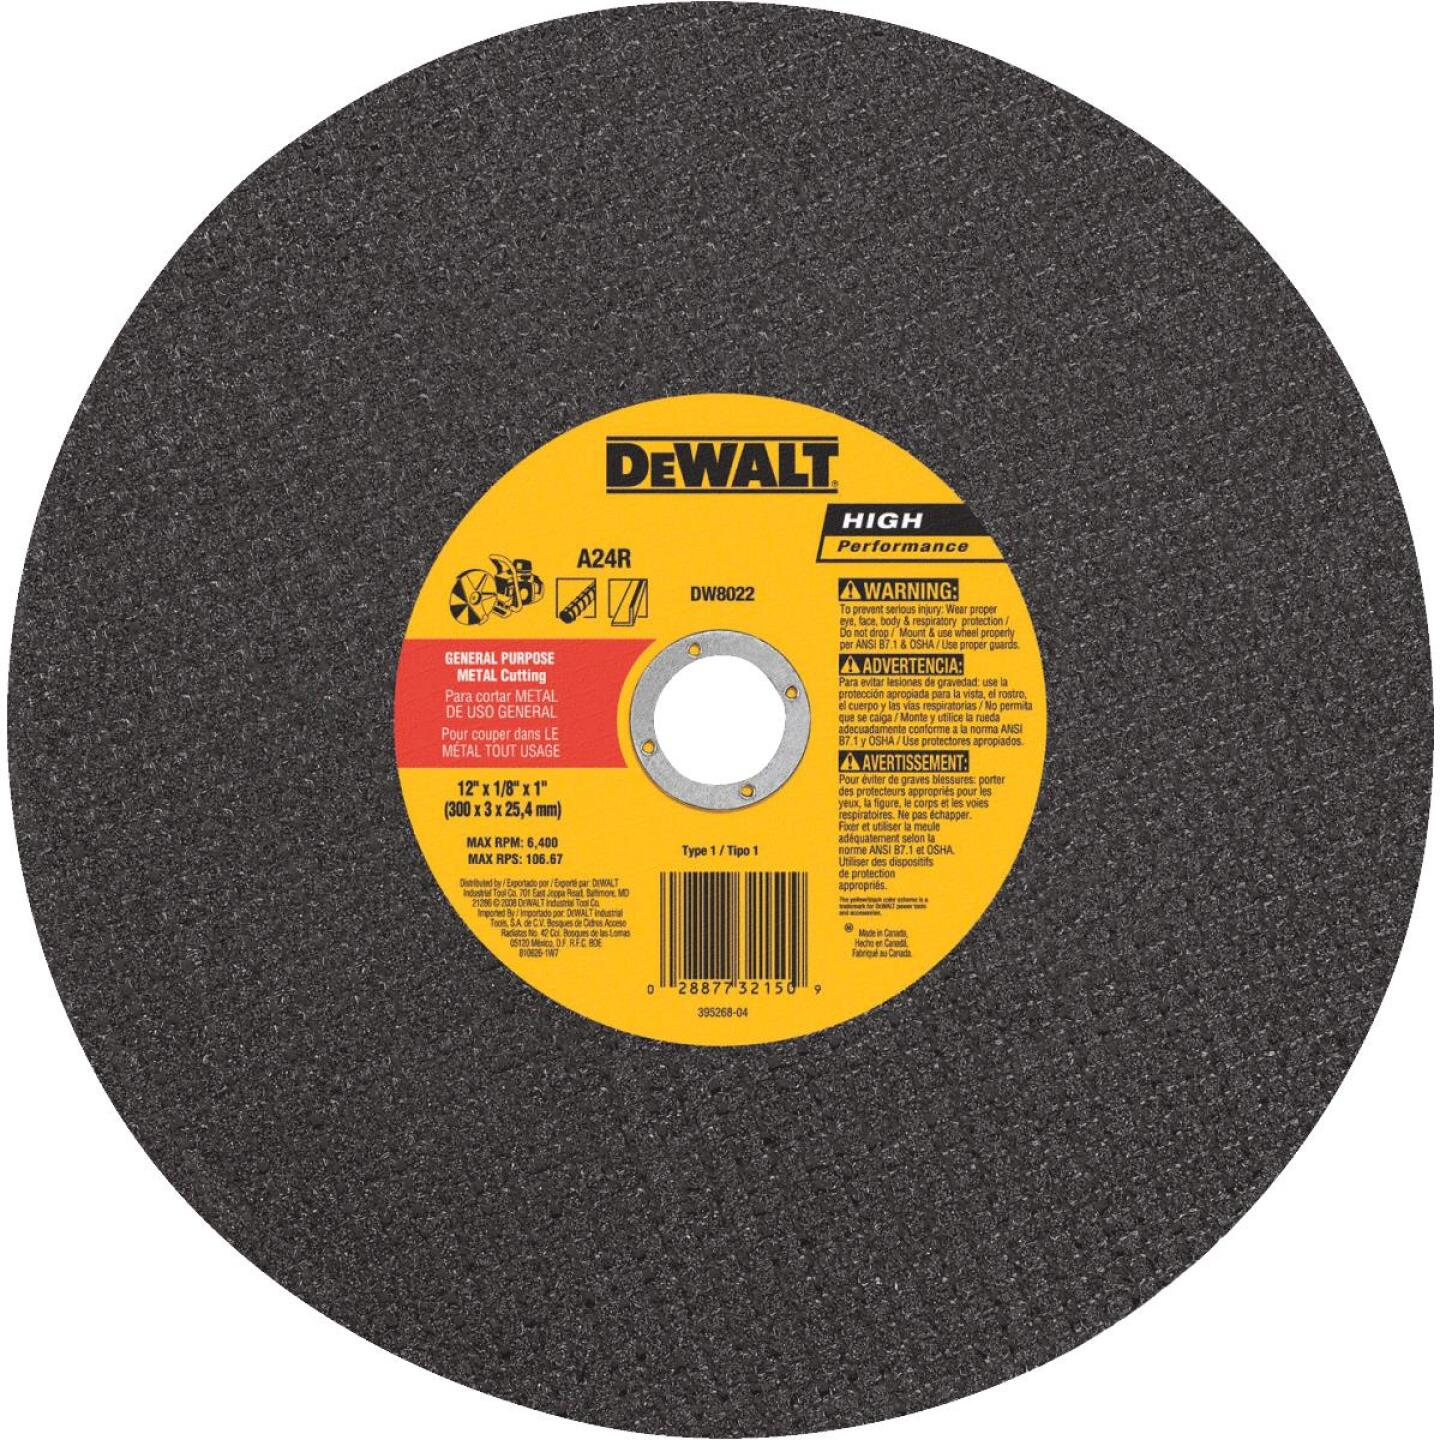 DeWalt HP Type 1 12 In. x 1/8 In. x 1 In. Metal Cut-Off Wheel Image 1